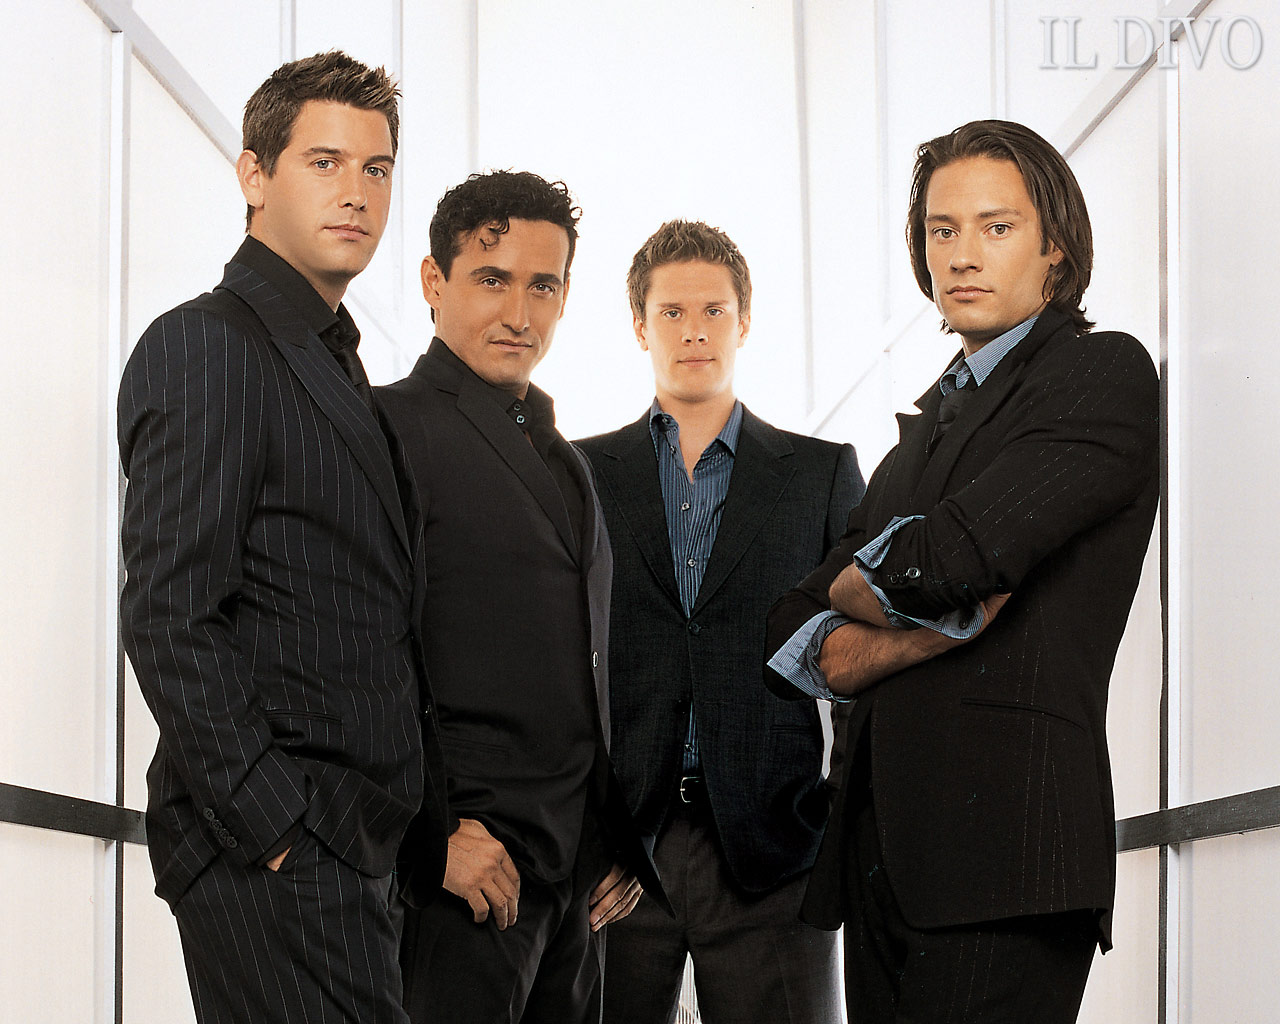 Outil de redimenssionnement manuel weesk studio - Il divo man you love ...